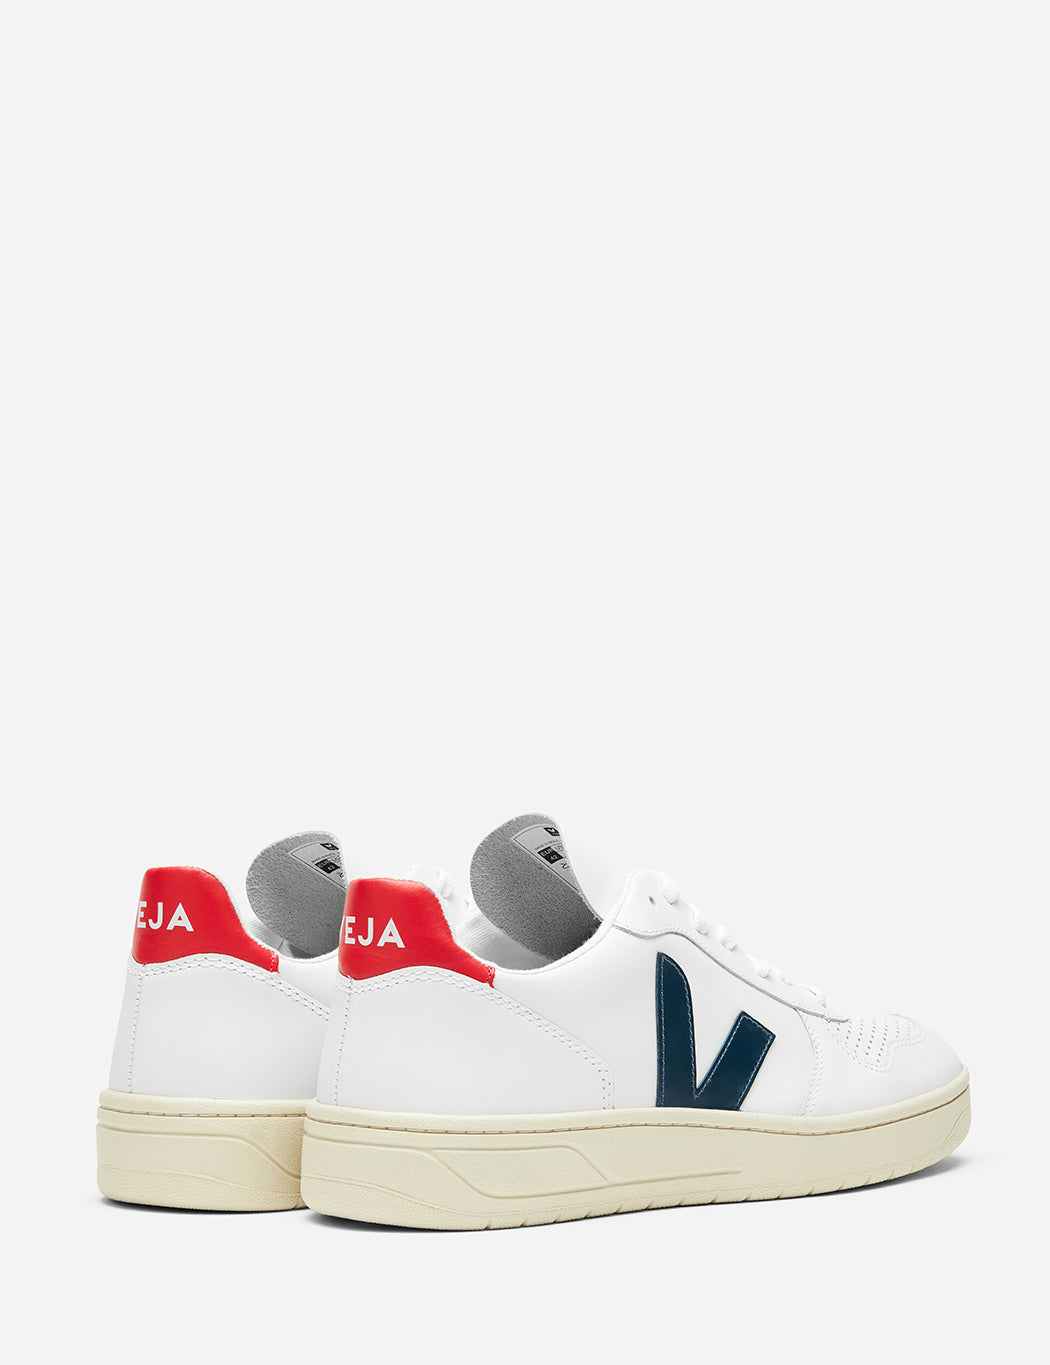 Veja V-10 Leather Trainers - Extra White / Nautico Blue / Pekin Red